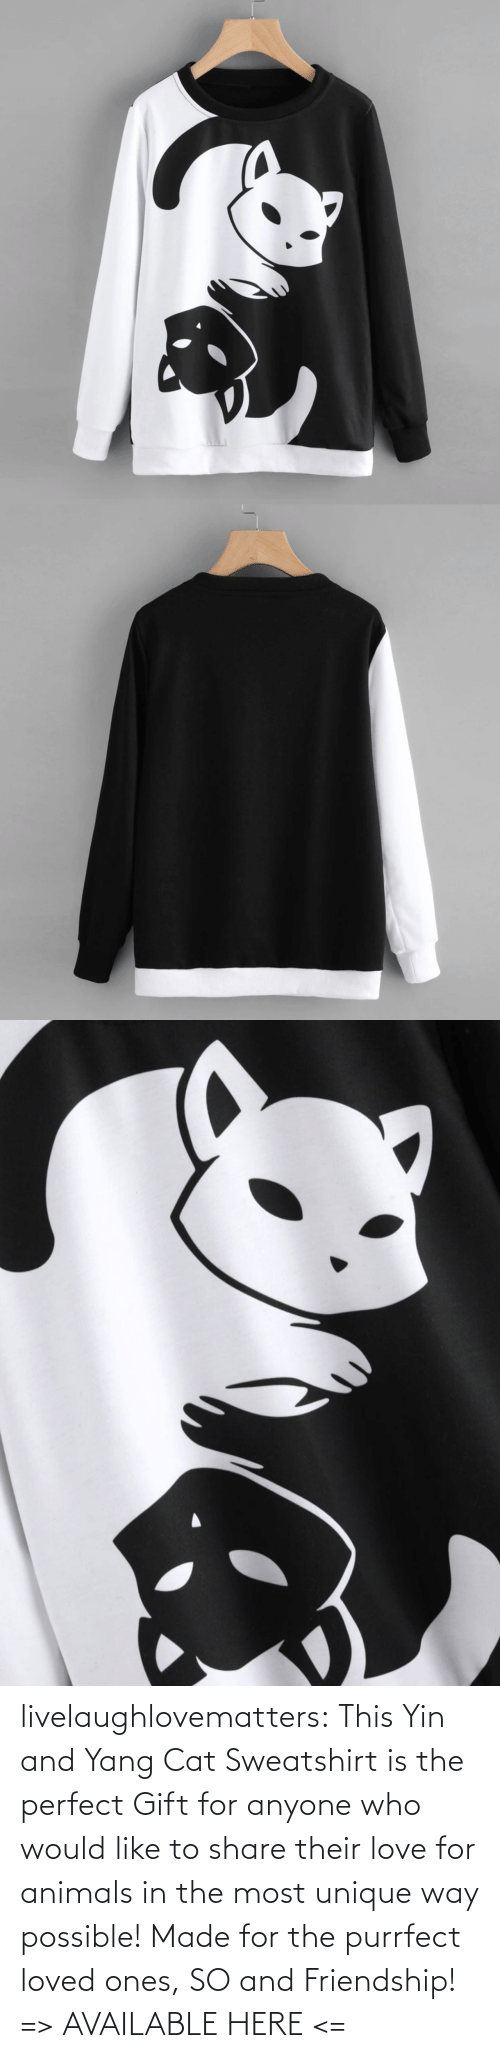 for: livelaughlovematters: This Yin and Yang Cat Sweatshirt is the perfect Gift for anyone who would like to share their love for animals in the most unique way possible! Made for the purrfect loved ones, SO and Friendship!  => AVAILABLE HERE <=